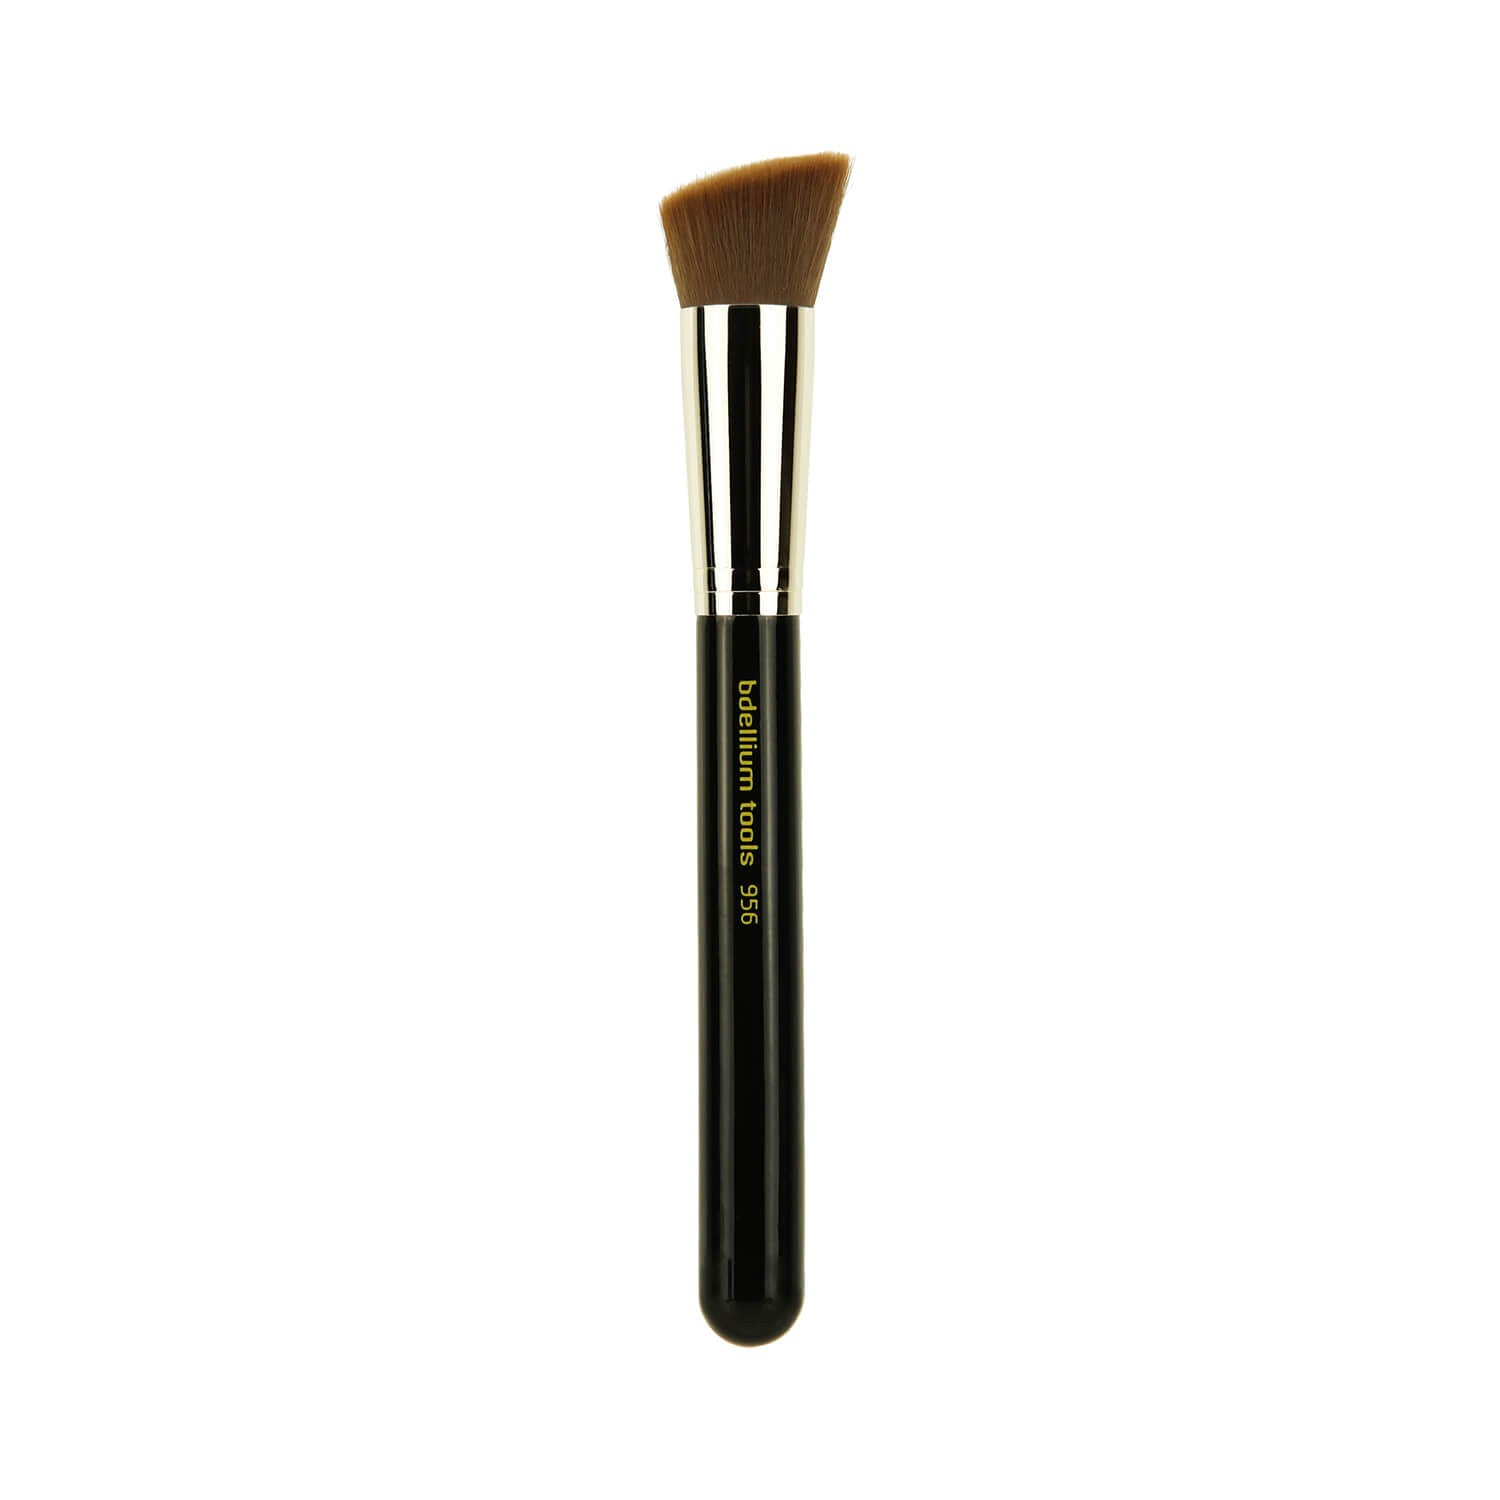 BDellium Tools Maestro Line 956 Slanted Precision Kabuki Brush Black